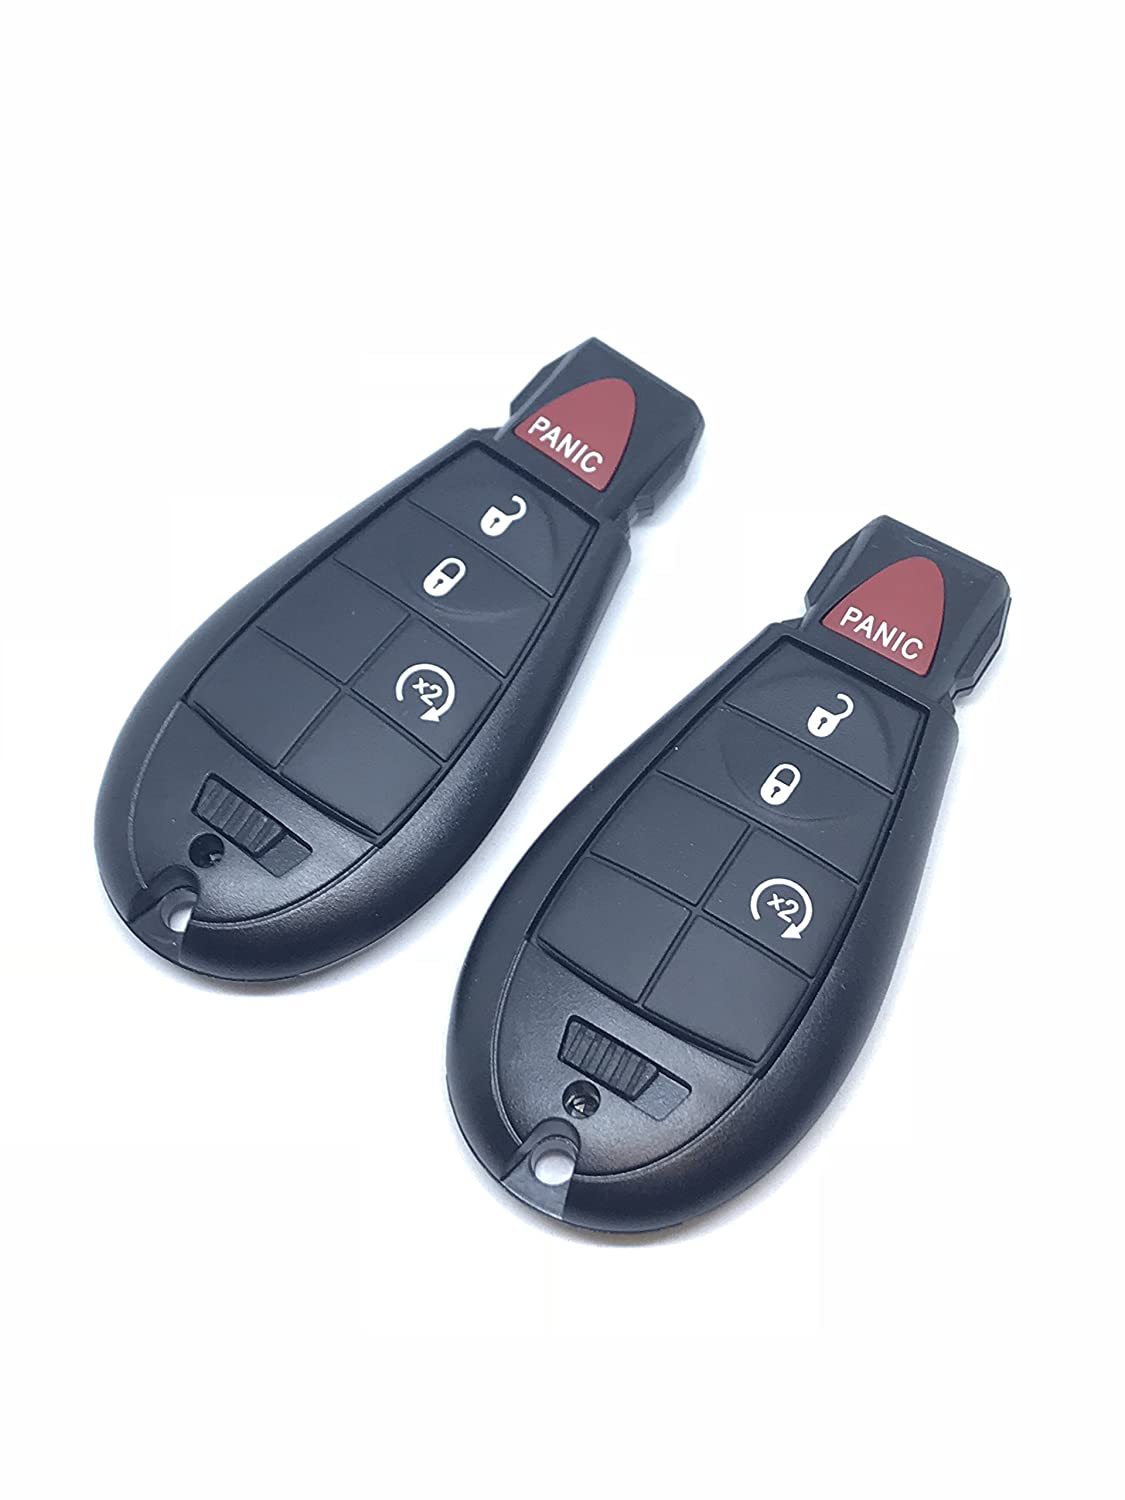 REMOTE STORE RAM Keyless Entry Remote Car Key for RAM Vehicles That Use 4 Button Fobik GQ4-53T with Remote Start - 2 Pack